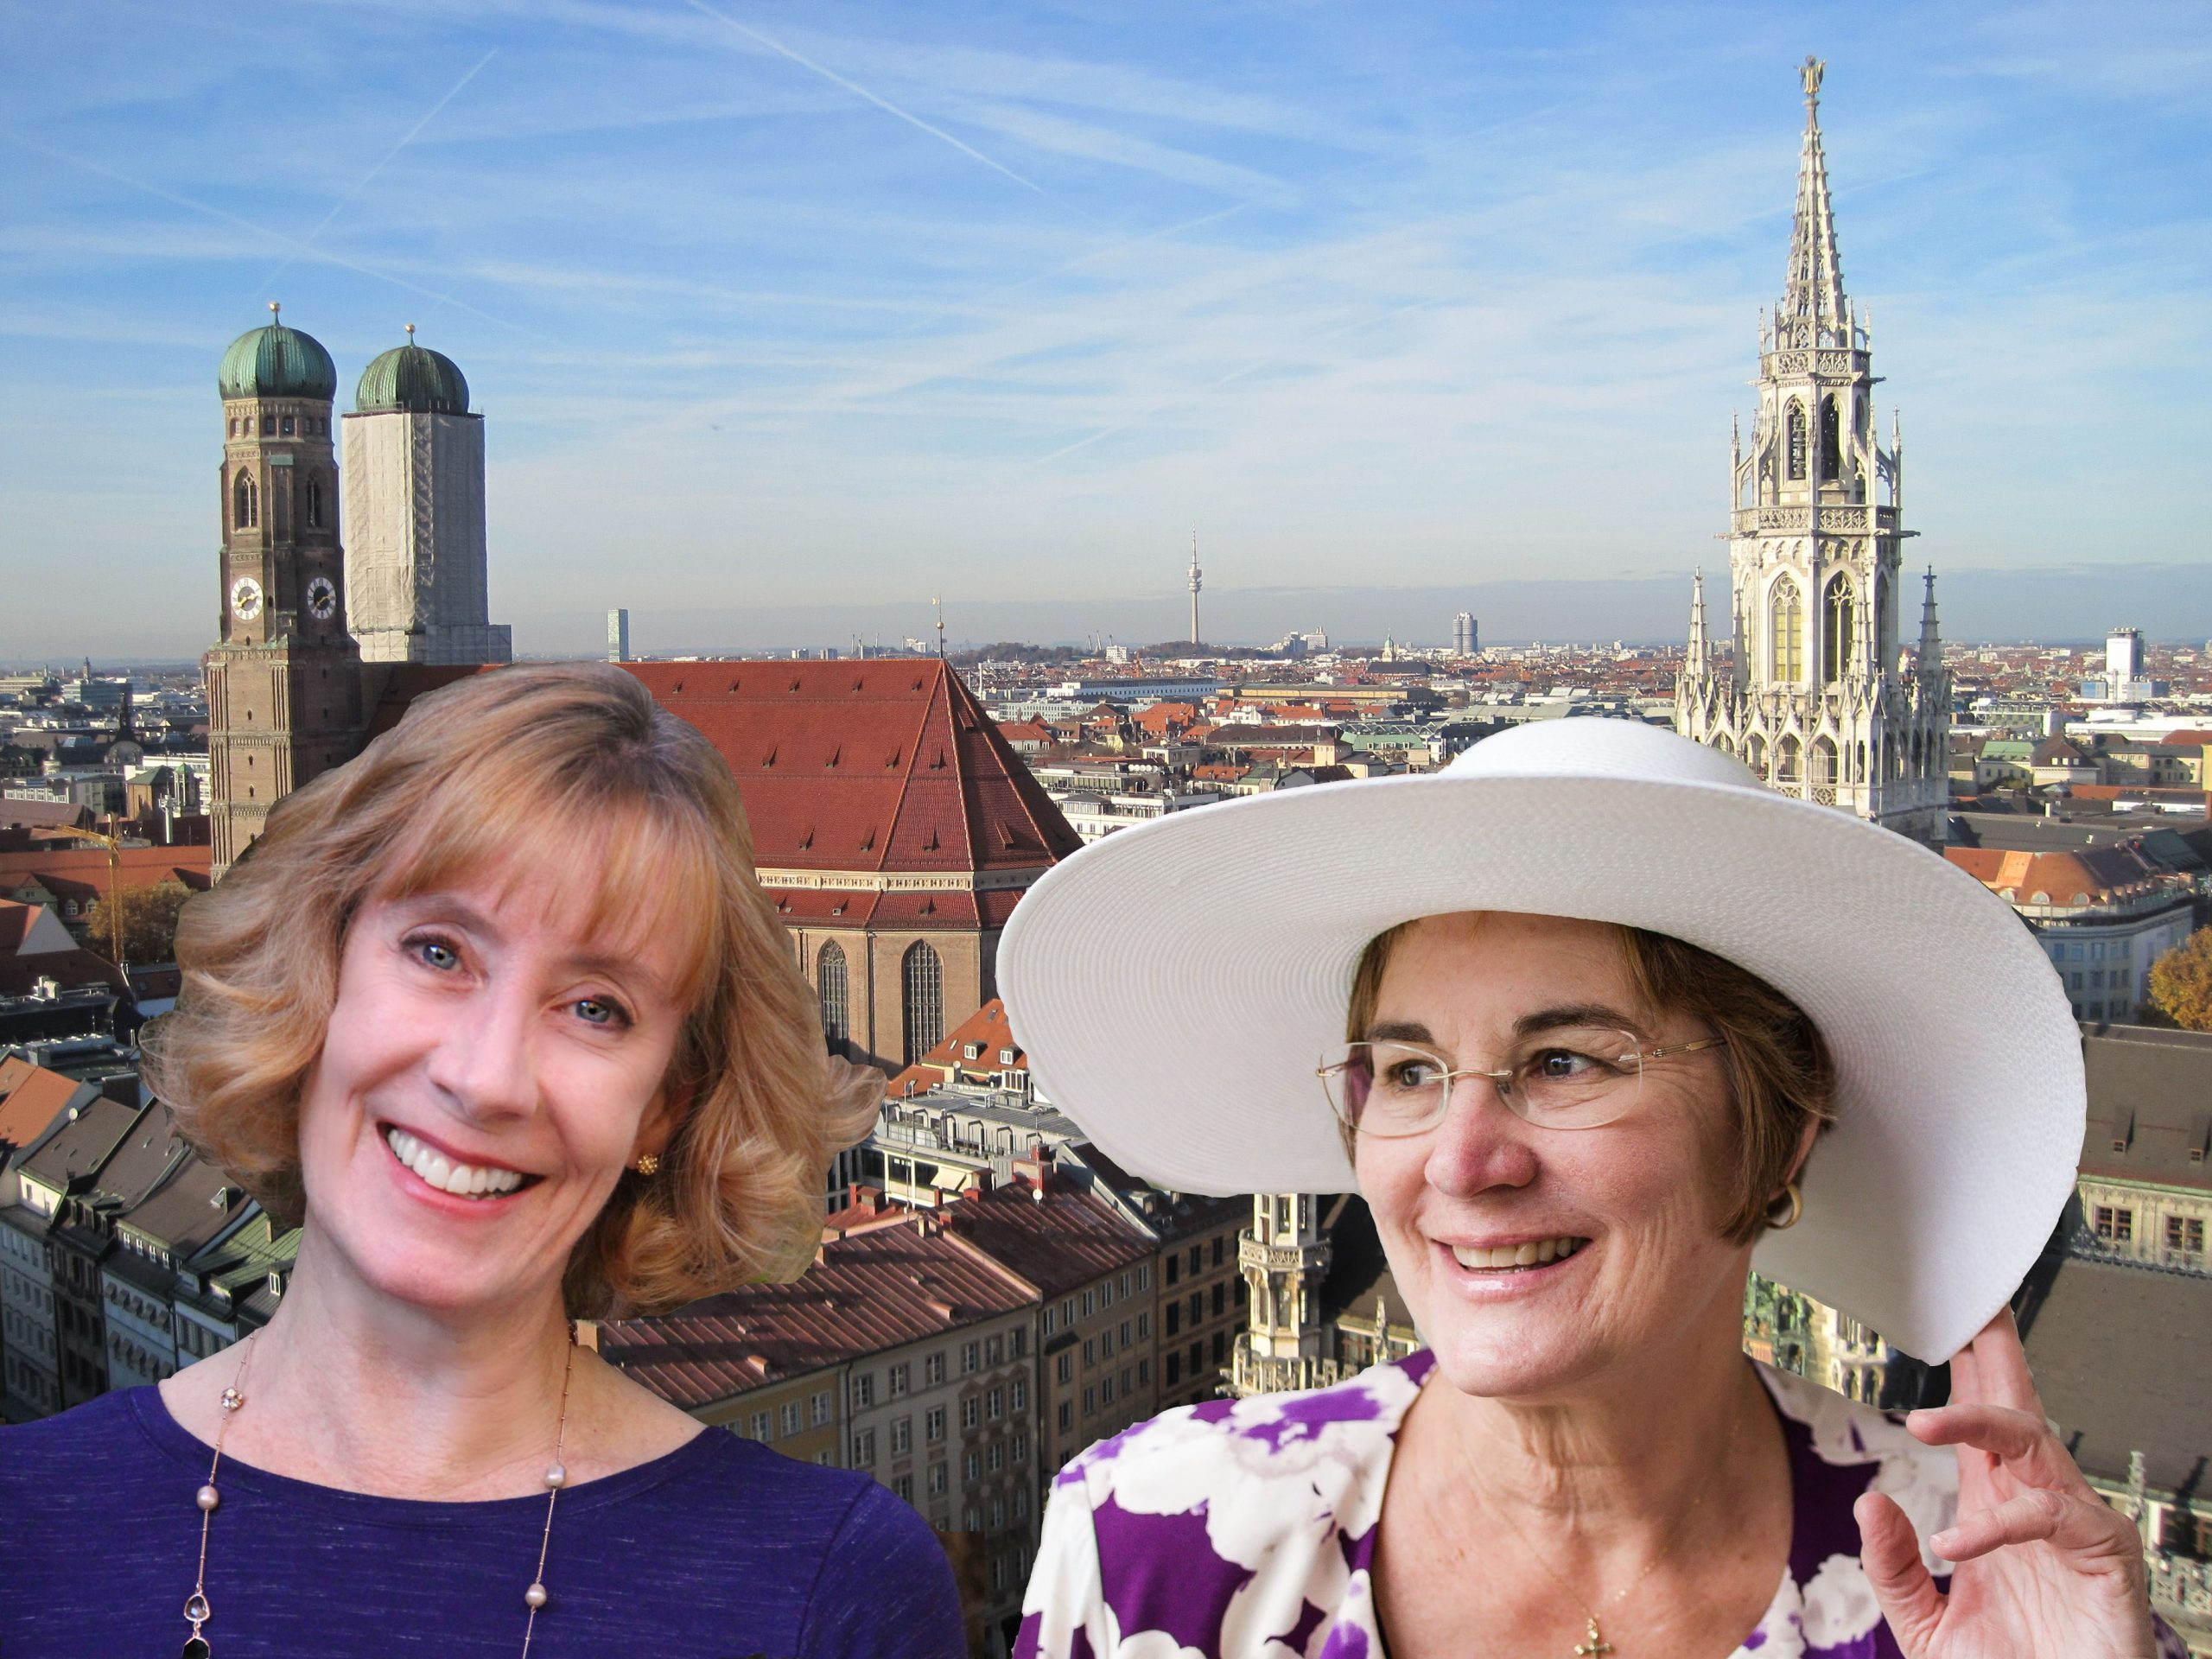 Marienplatz and the Neues Rathaus, viewed from the tower of St. Peterskirche, with travel buddy Michelle Ule (Photo courtesy of Morgan Tarpley Smith)